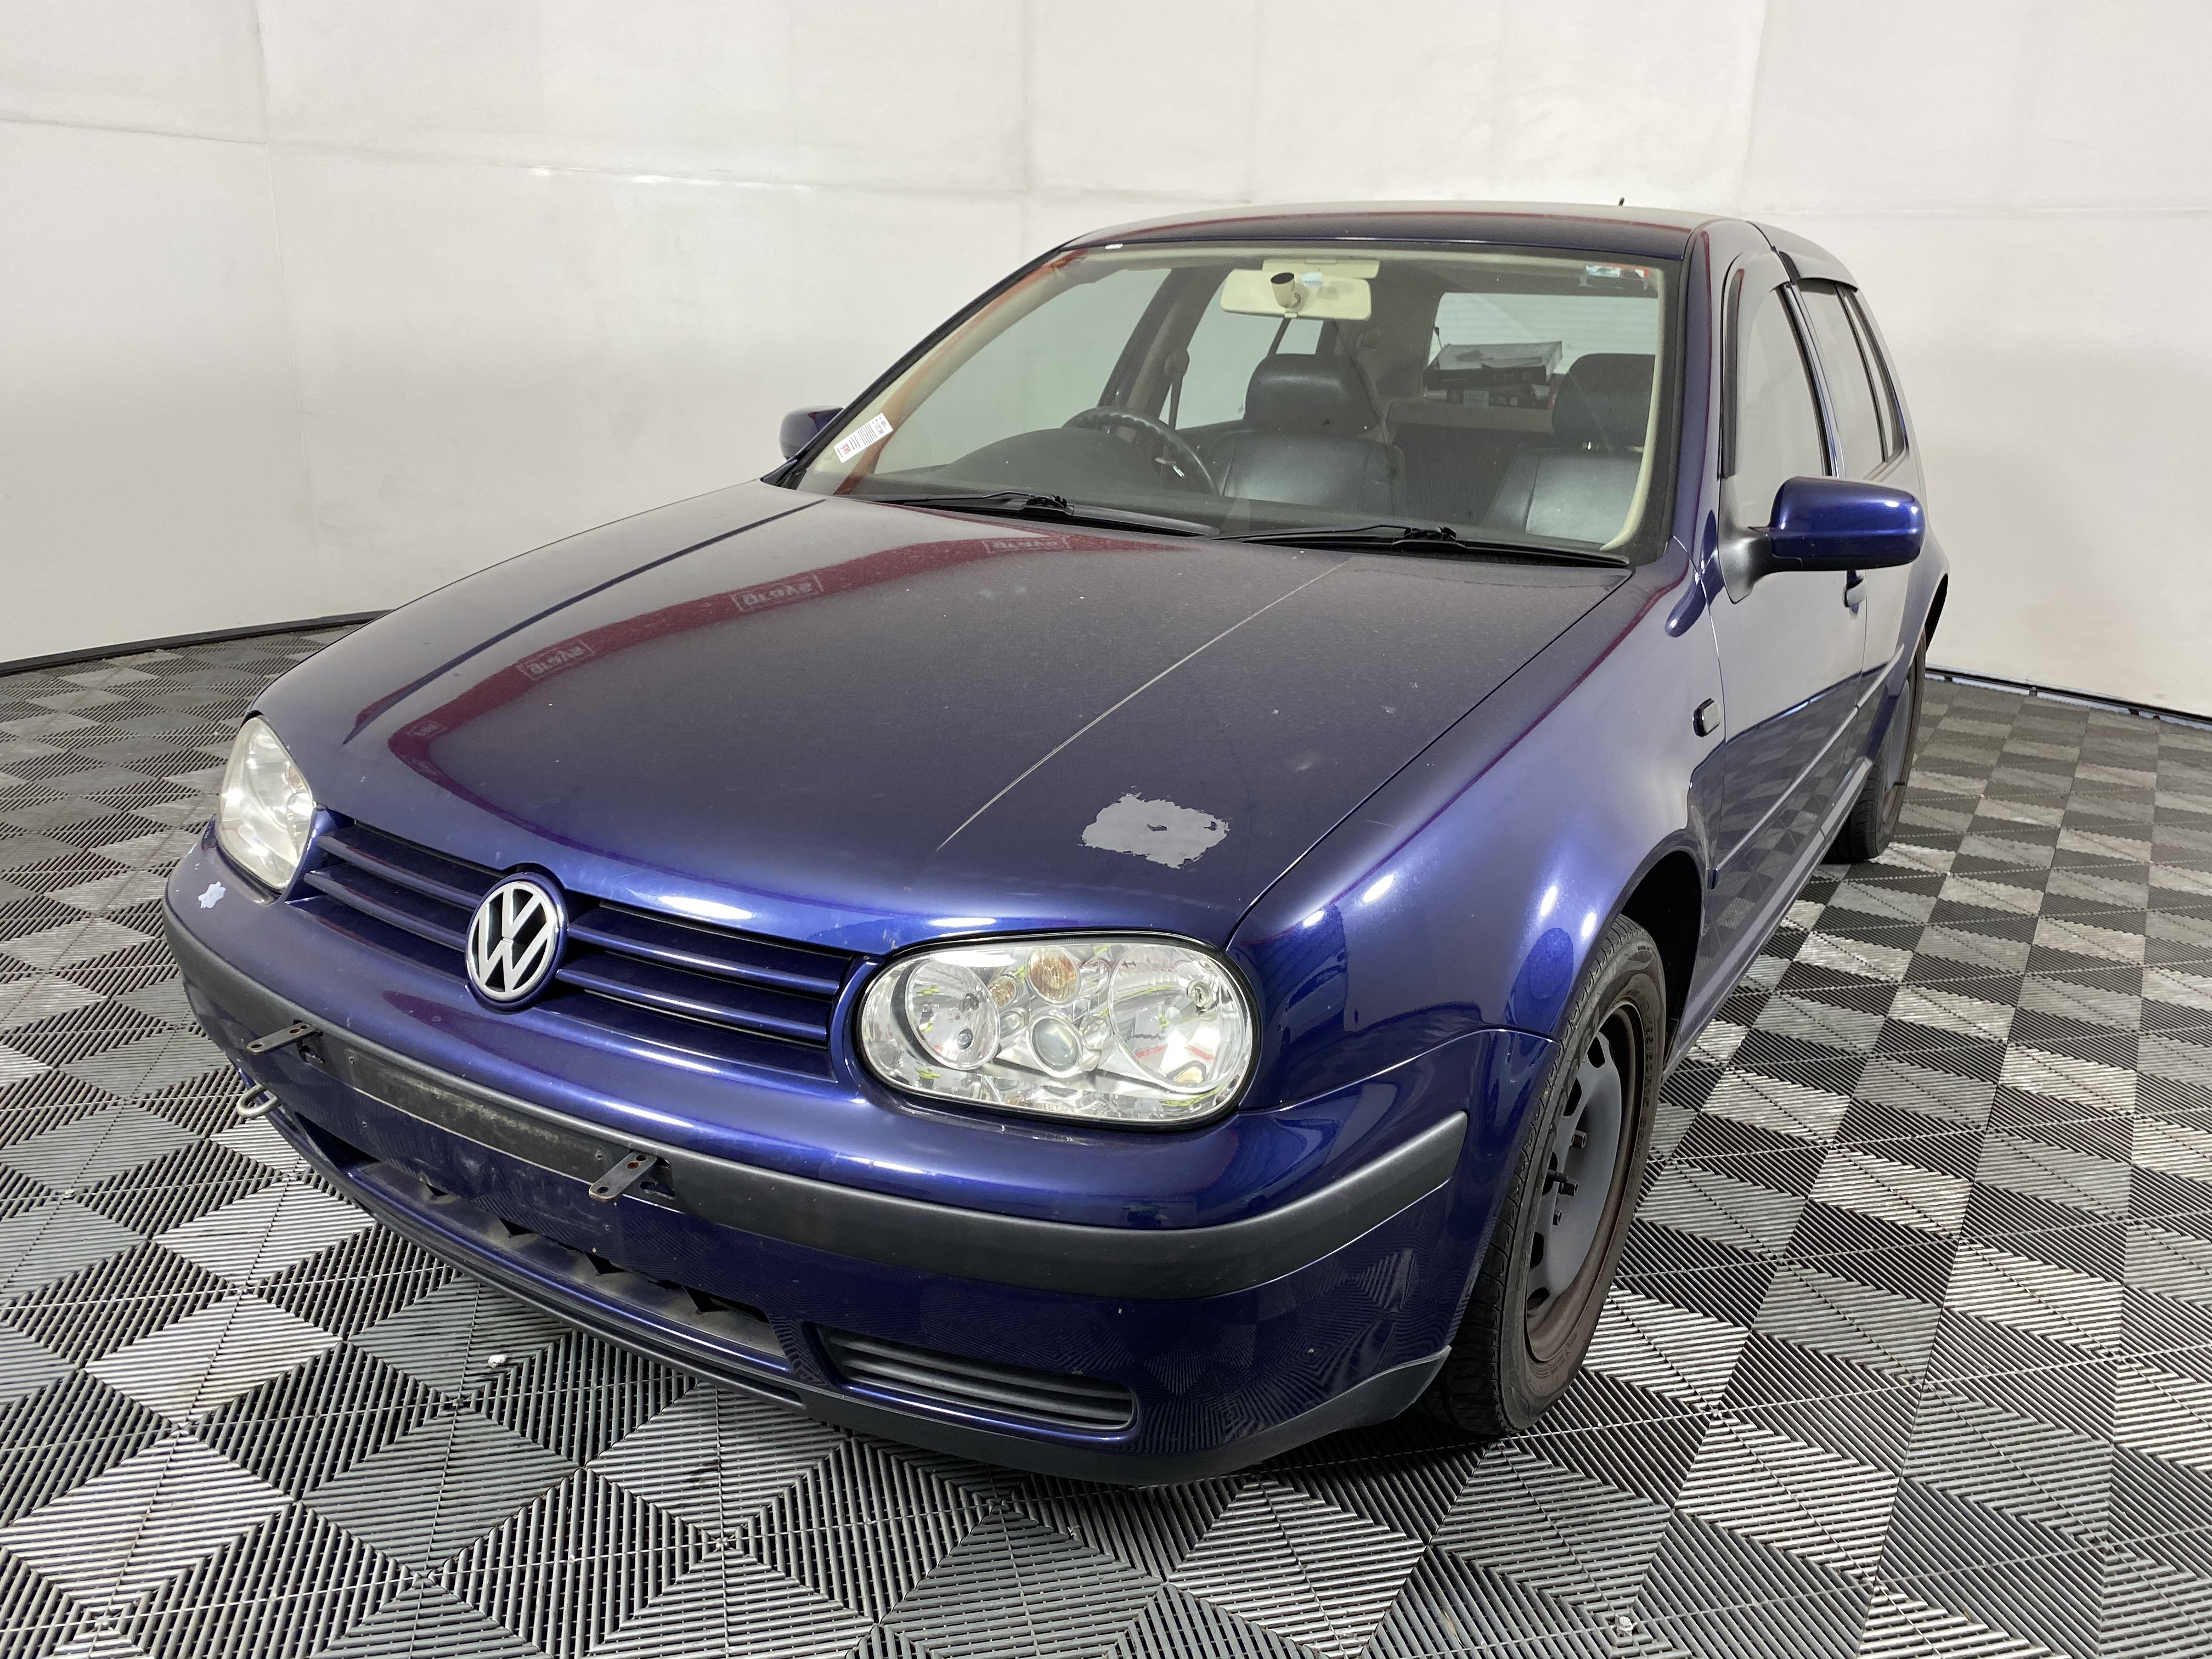 2000 Volkswagen Golf GLE A4 Automatic Hatchback